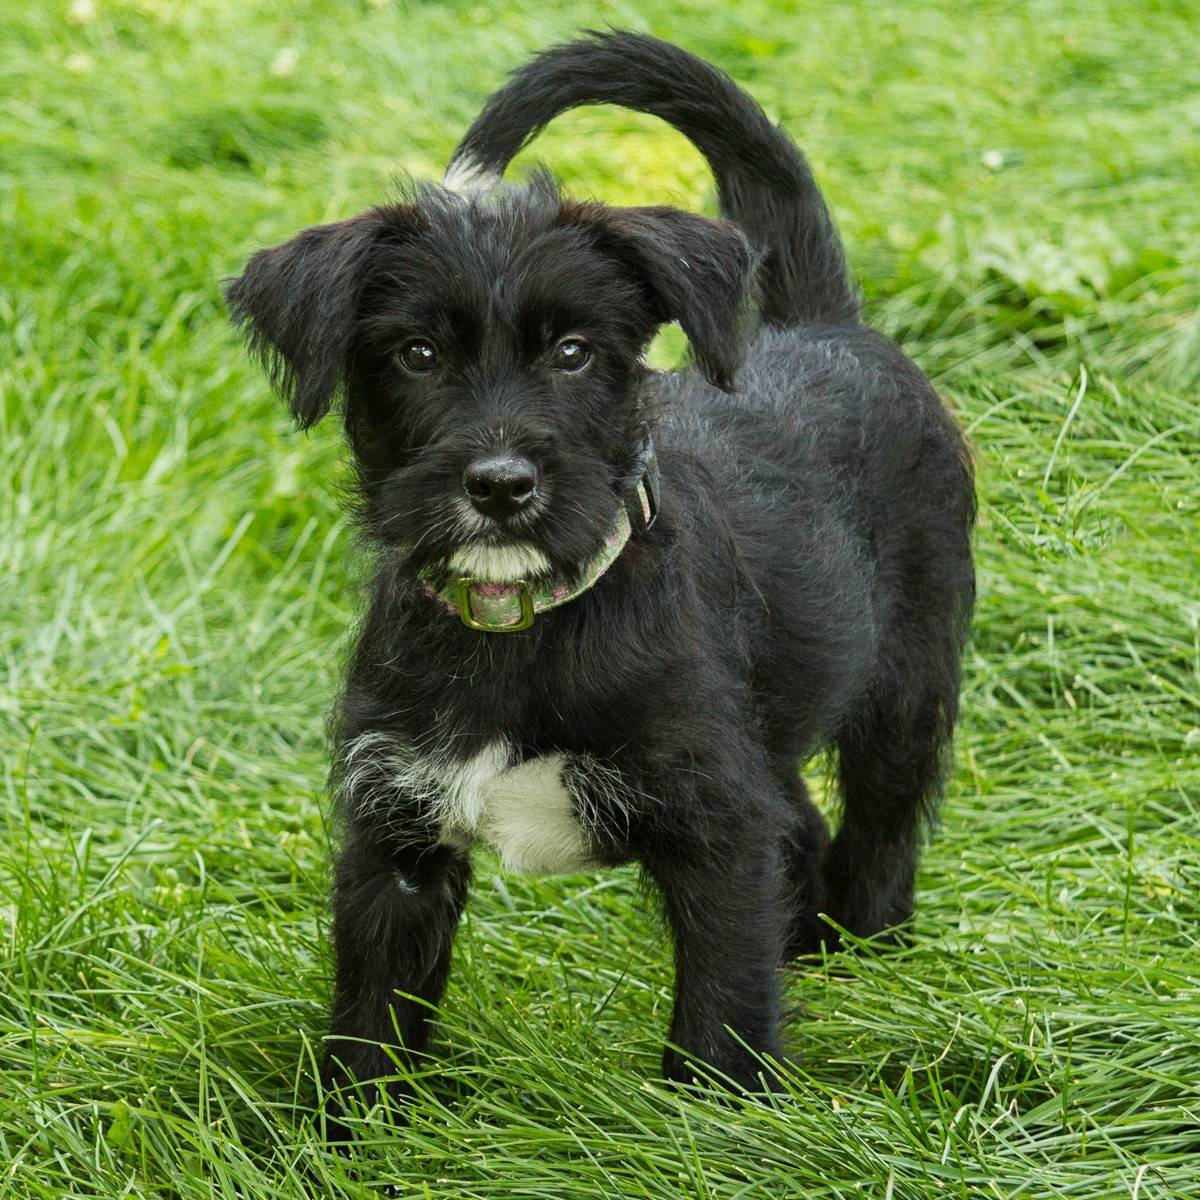 Gabby, a 4-month old Schnauzer/terrier mix, weighs about 12 pounds.